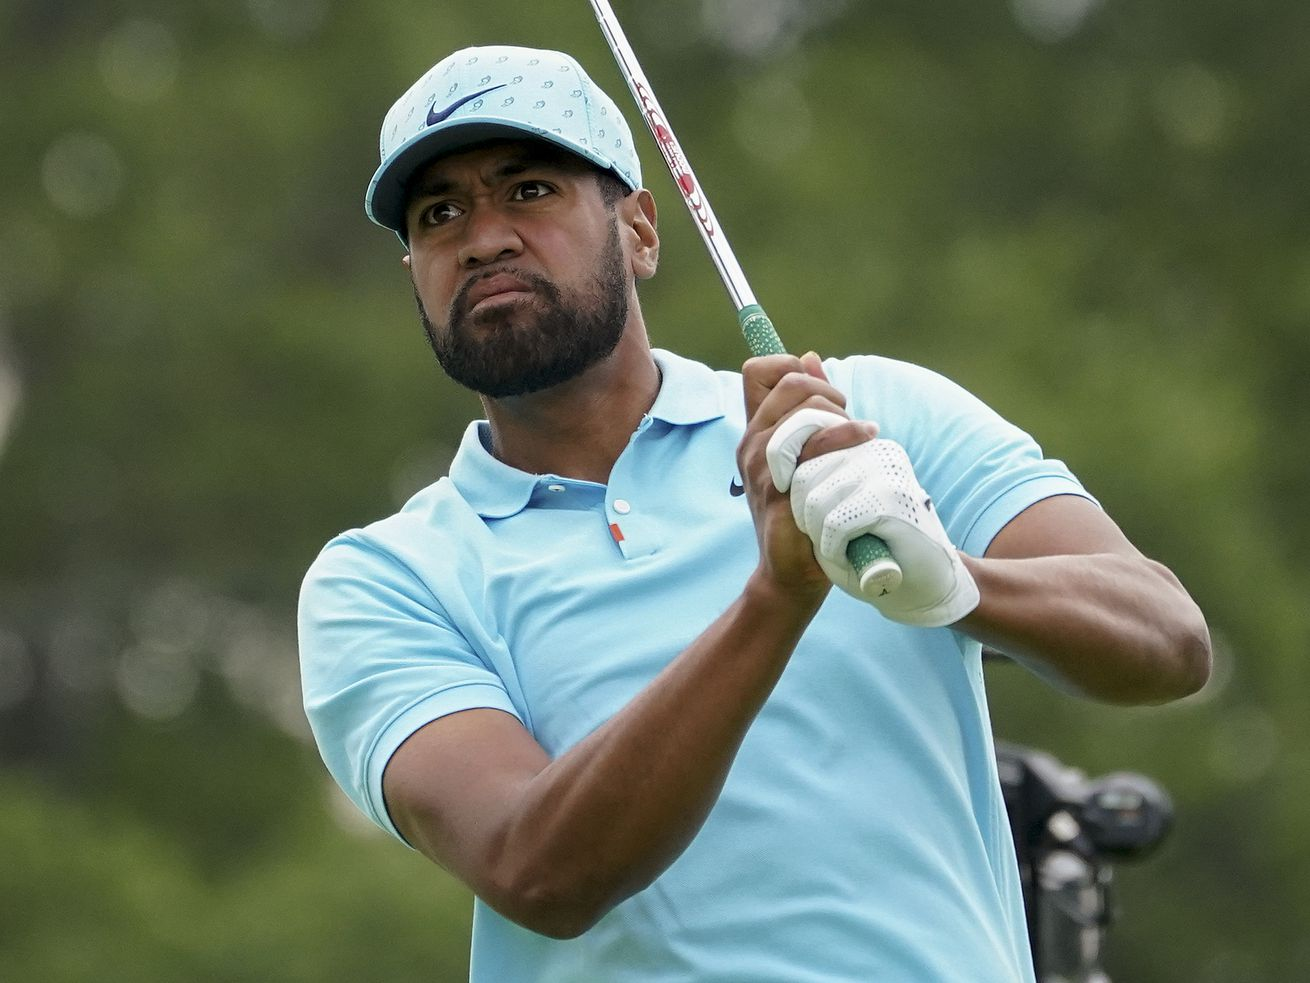 Tony Finau being sued by Utah businessman Molonai Hola for more than $16 million